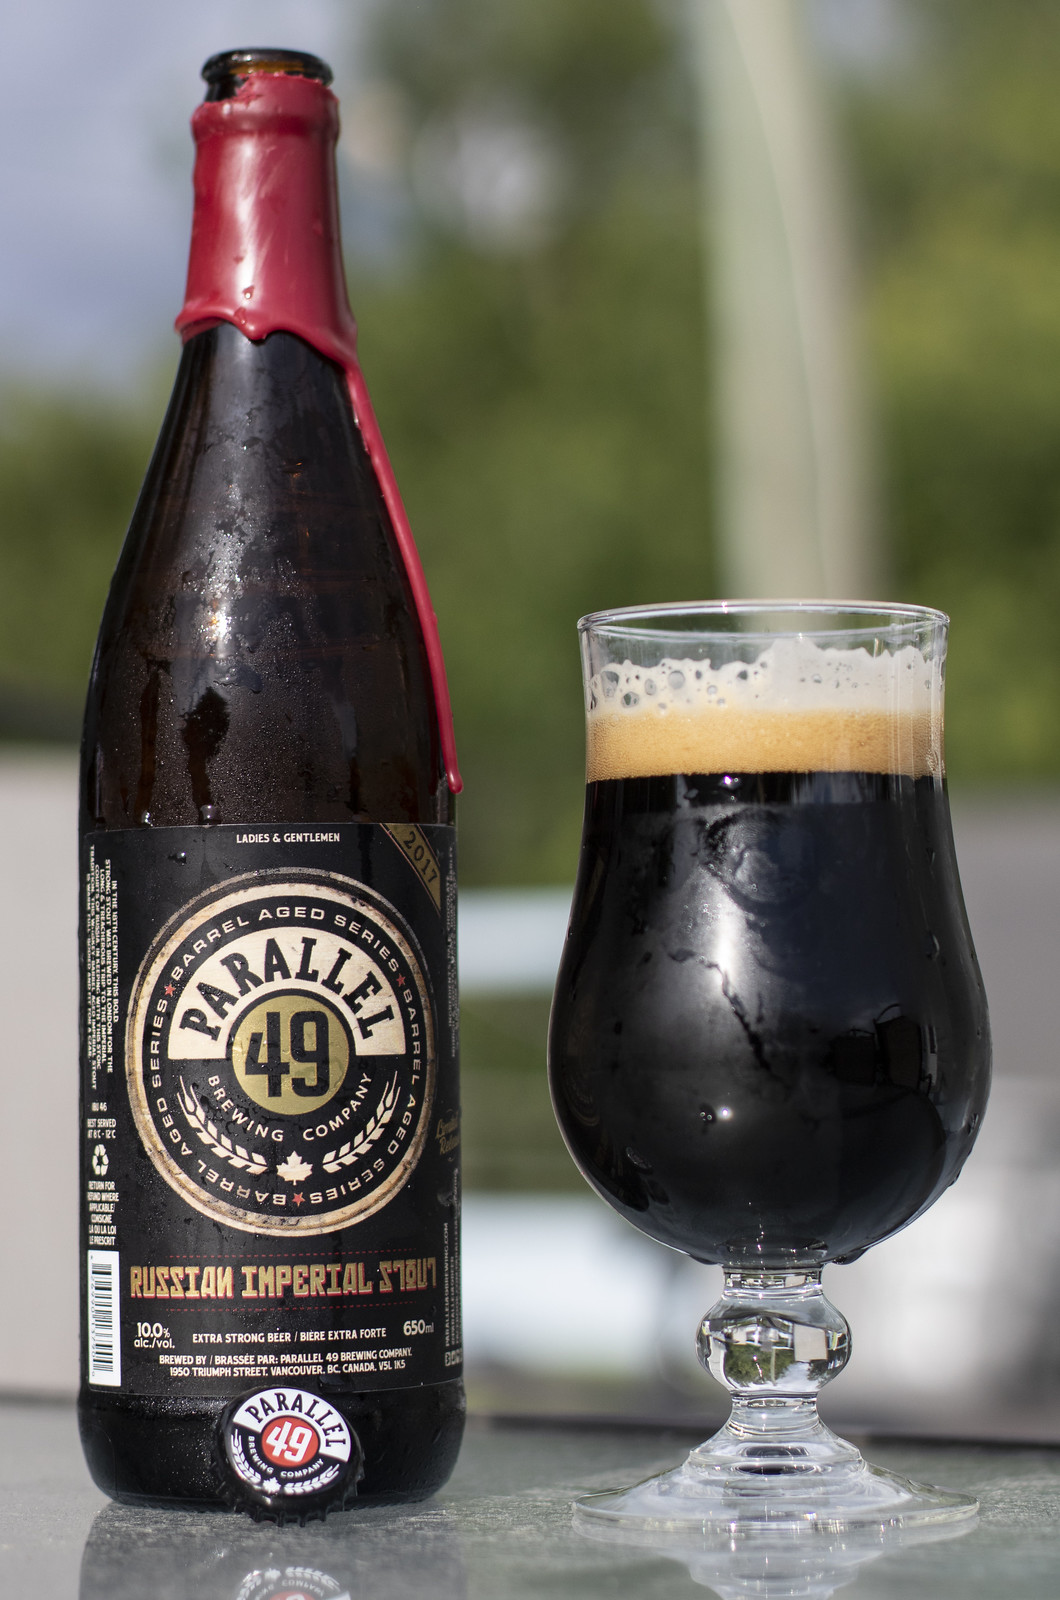 Parallel 49 Russian Imperial Stout (2017)